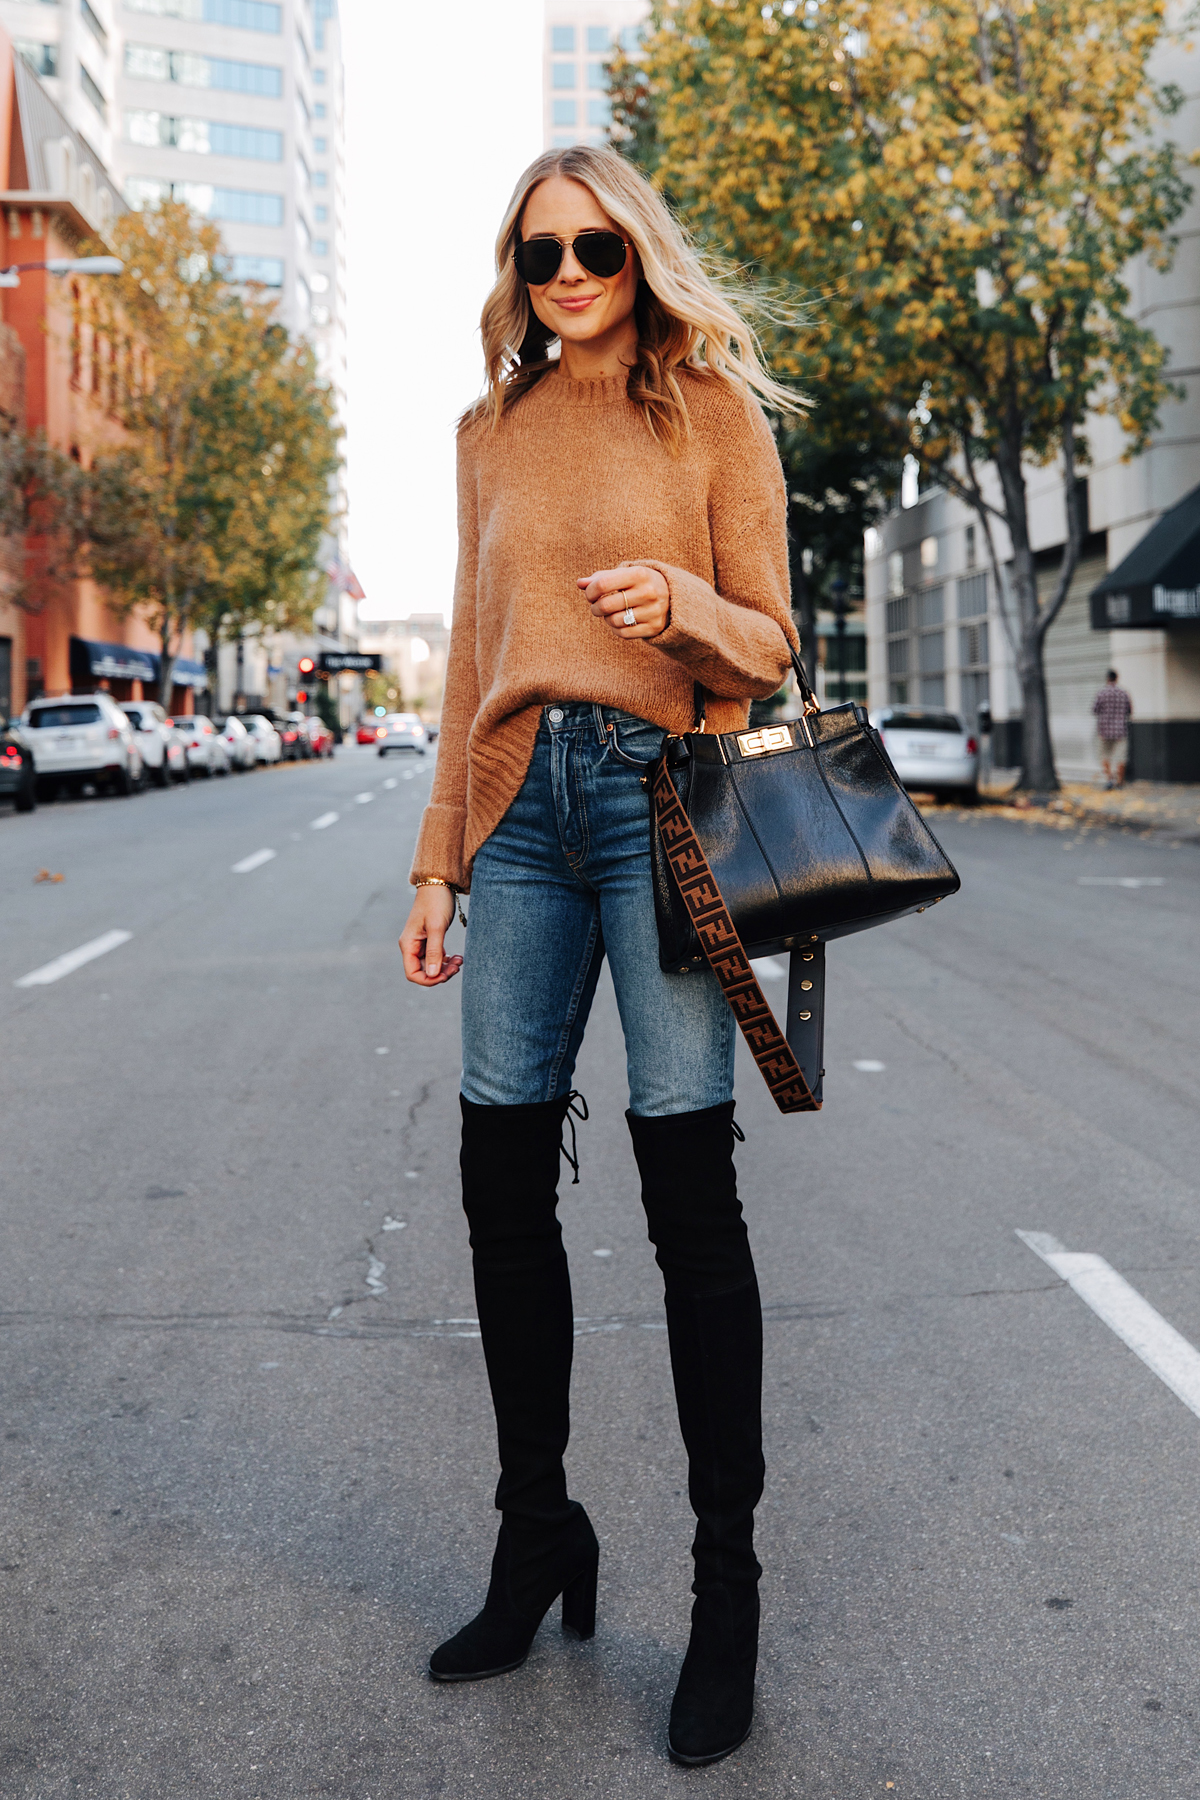 Fashion Jackson Wearing Camel Sweater Stuart Weitzman Black Over the Knee Boots Fendi Peekaboo Black Handbag